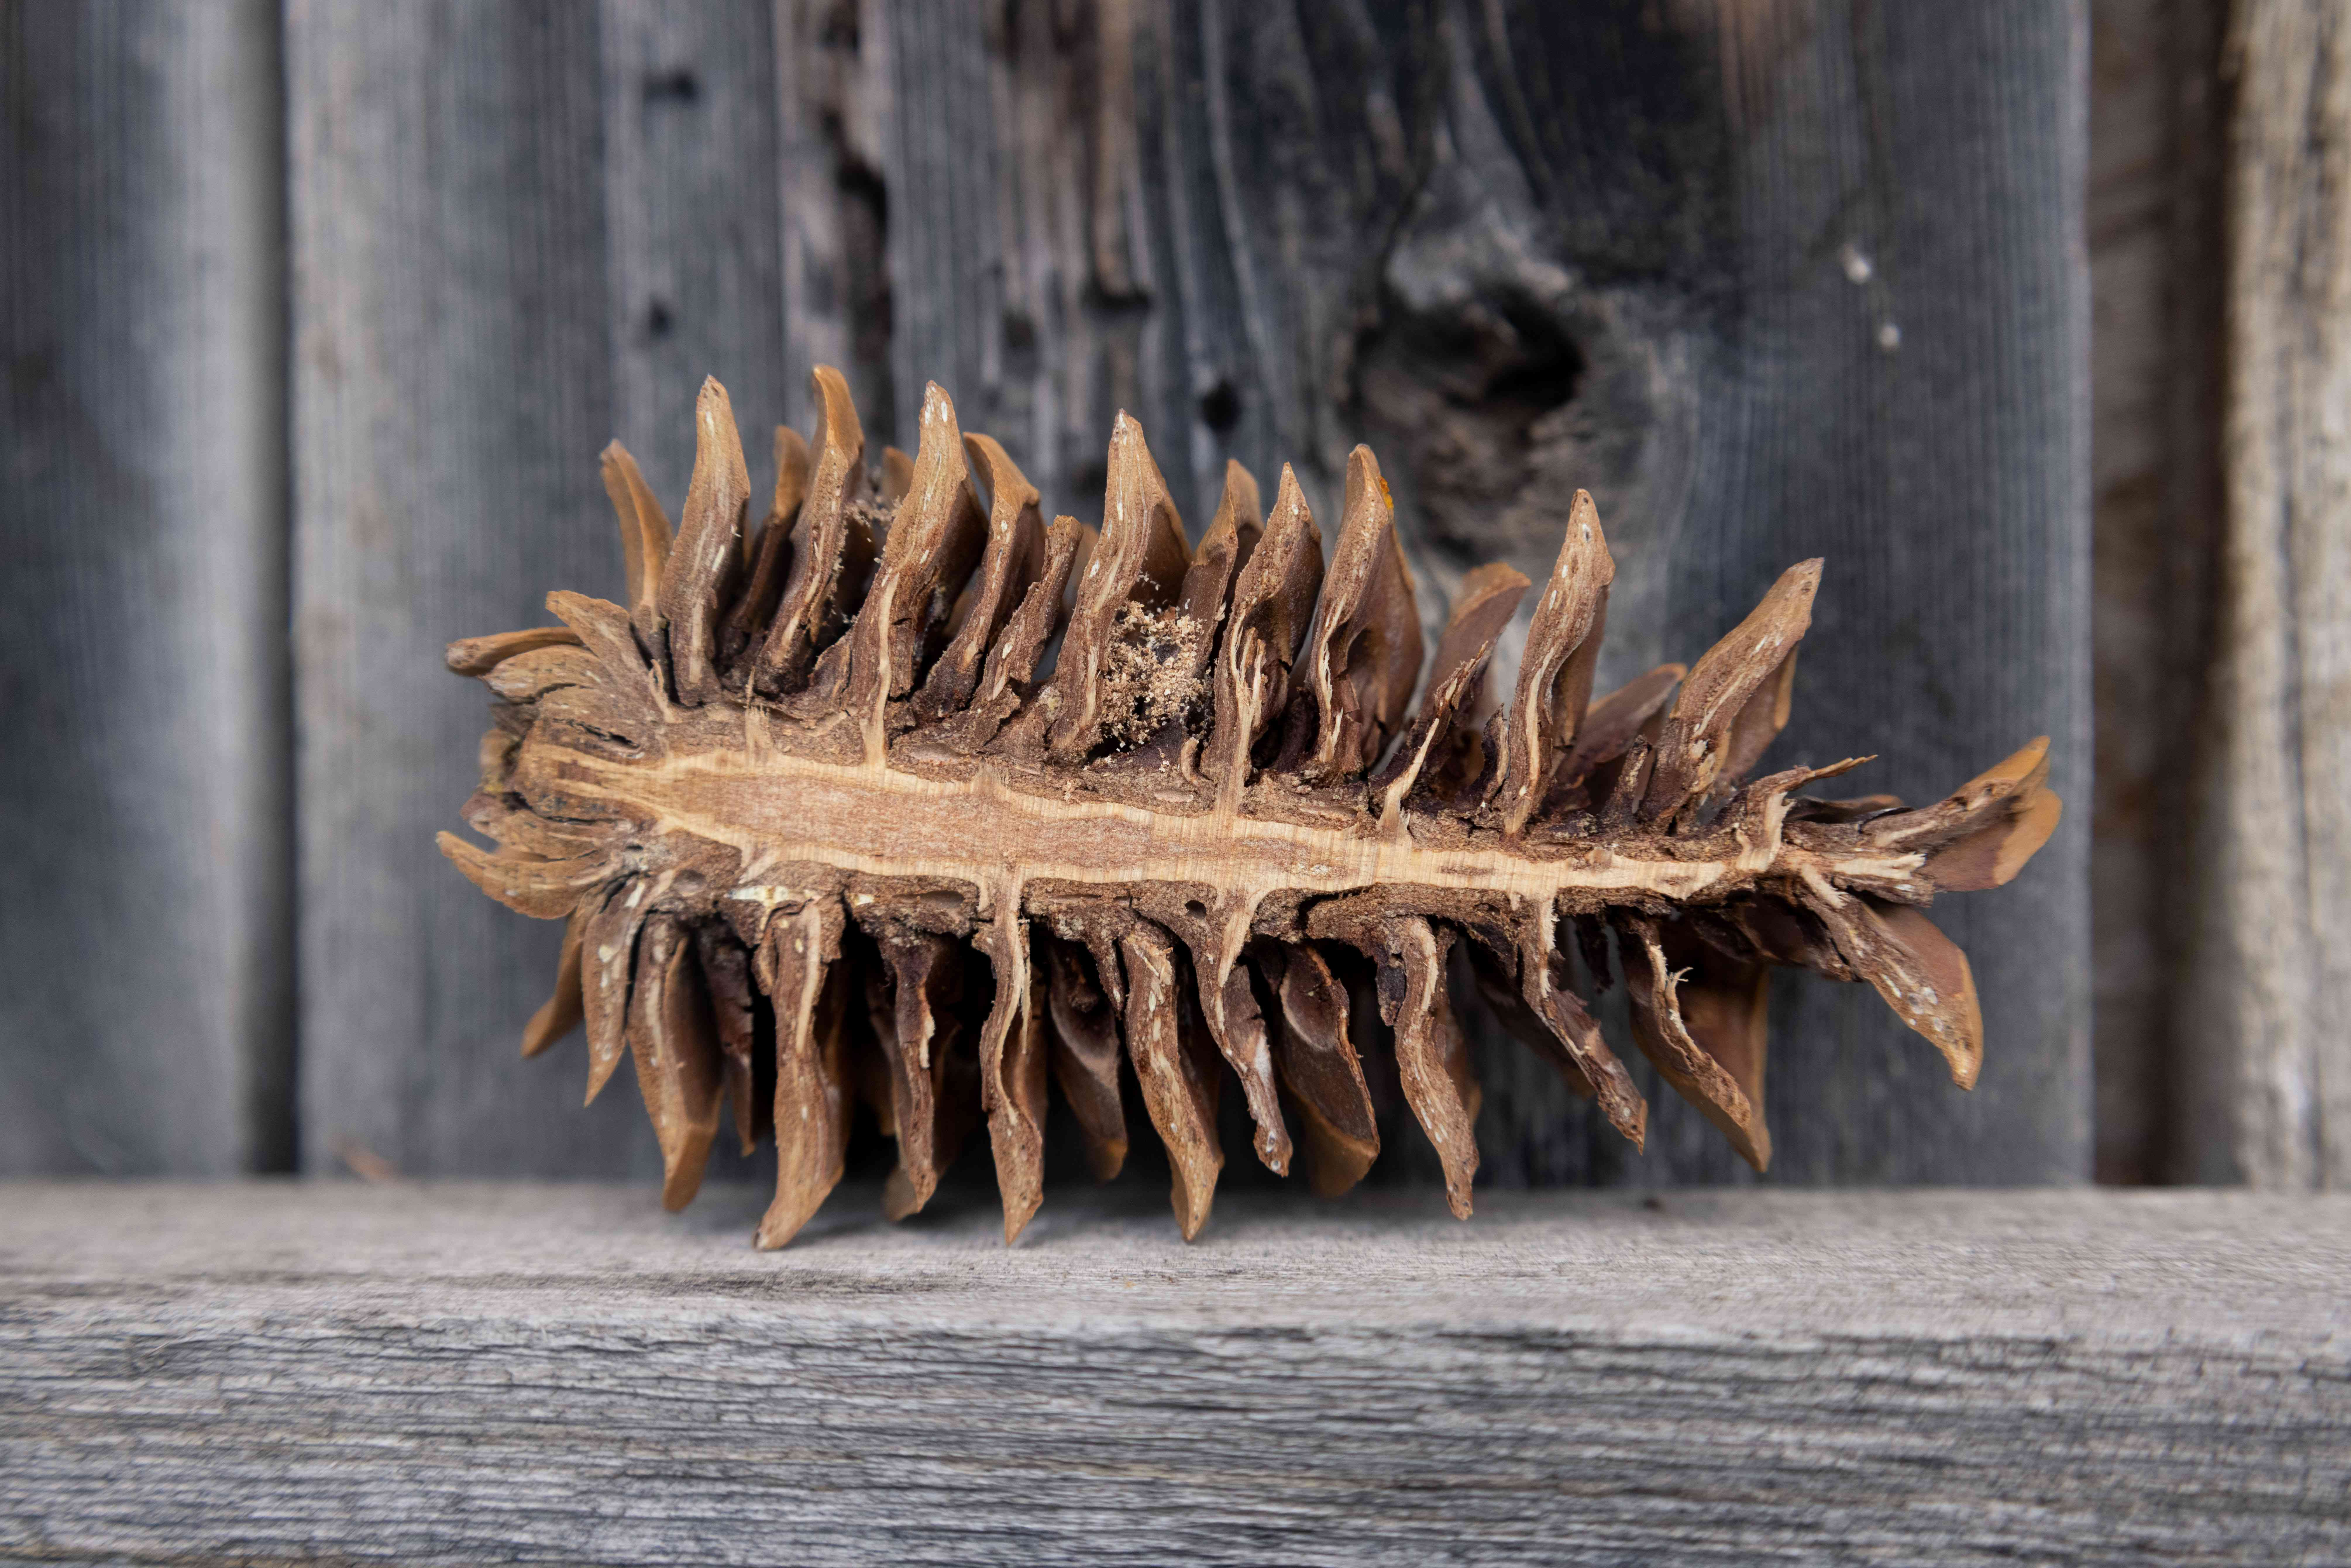 pine cone split in half to reveal seeds, propped on wooden fence